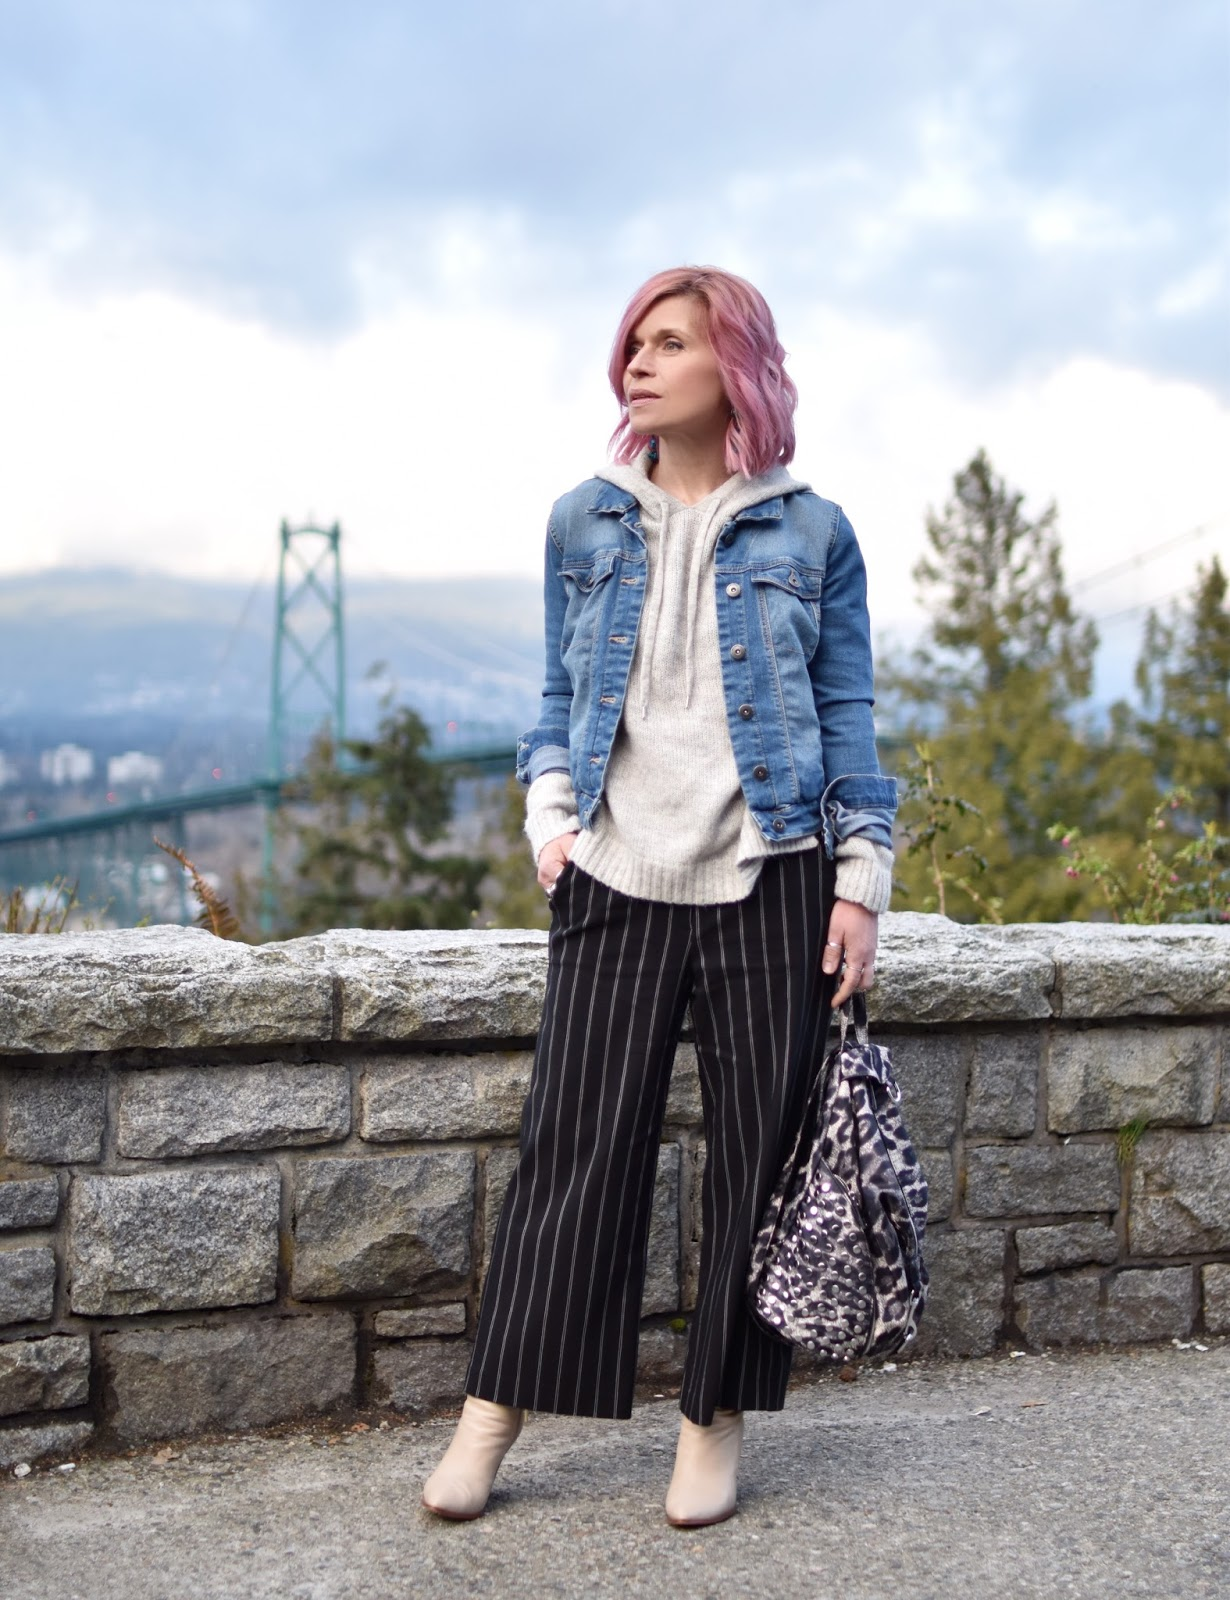 Monika Faulkner outfit inspiration - styling striped cropped trousers with a hoodie sweater, denim jacket, and ivory booties